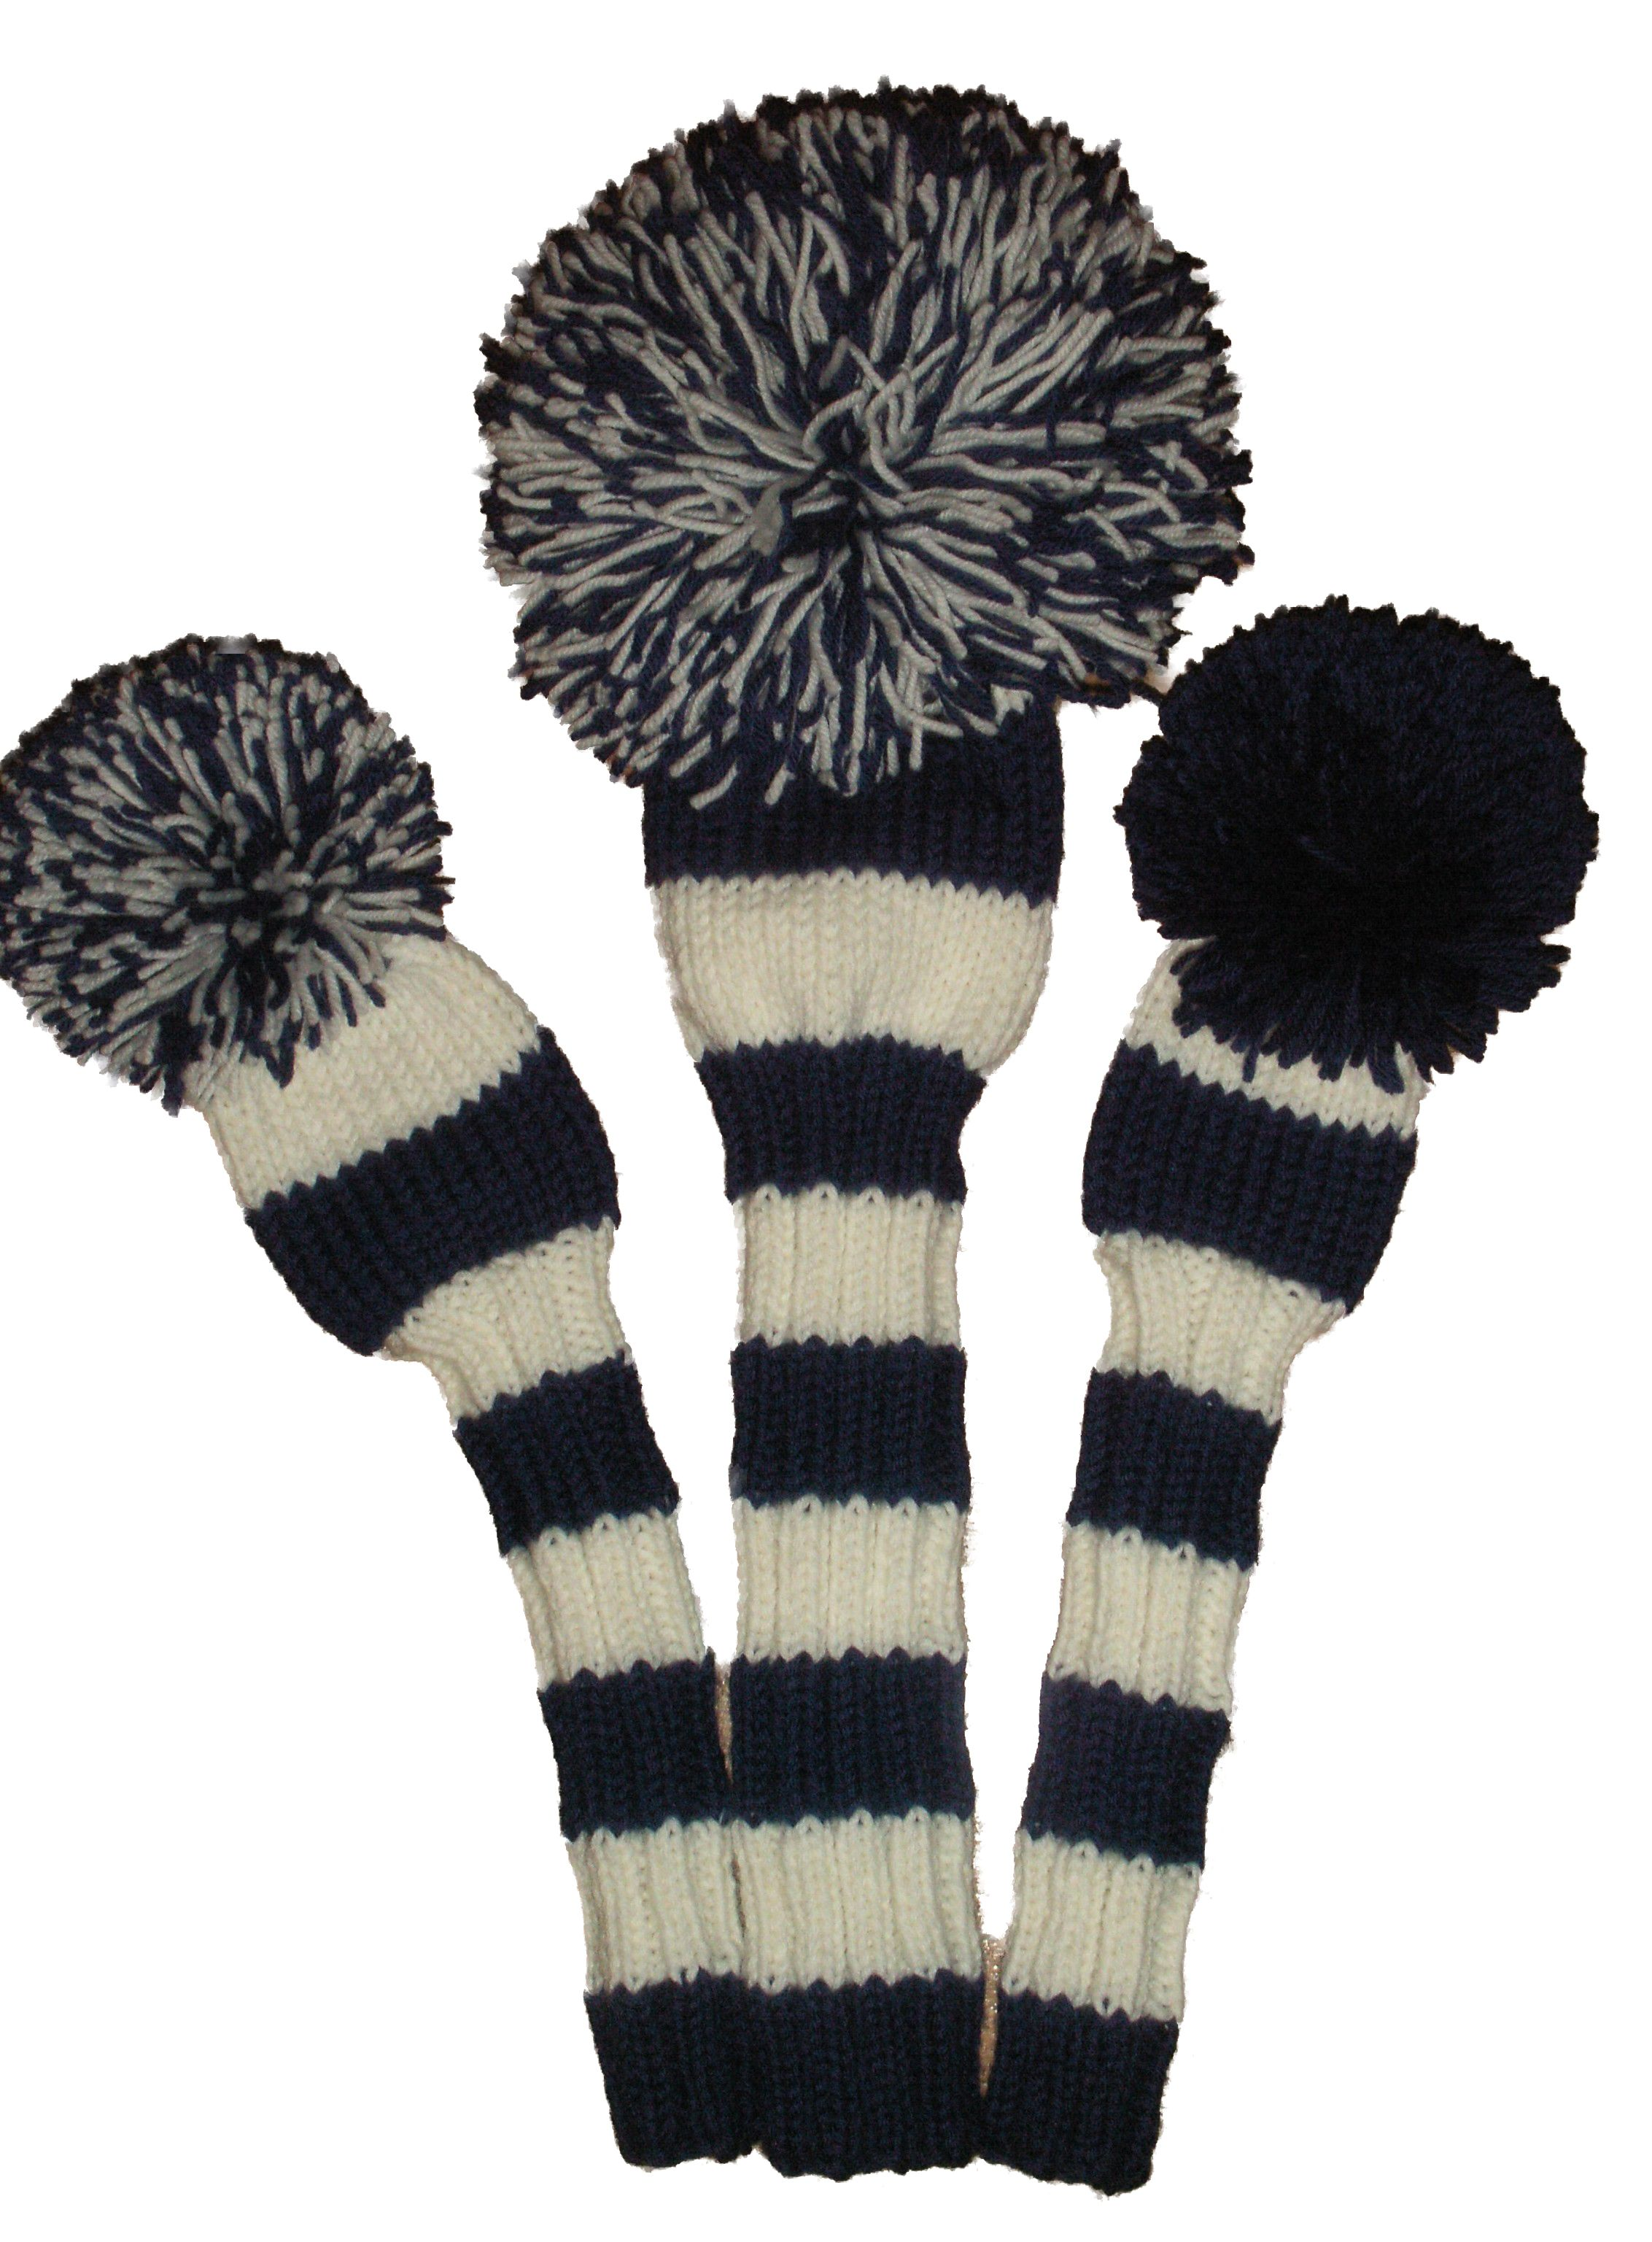 Chill Designs custom made hand knitted golf headcovers | Golf ...